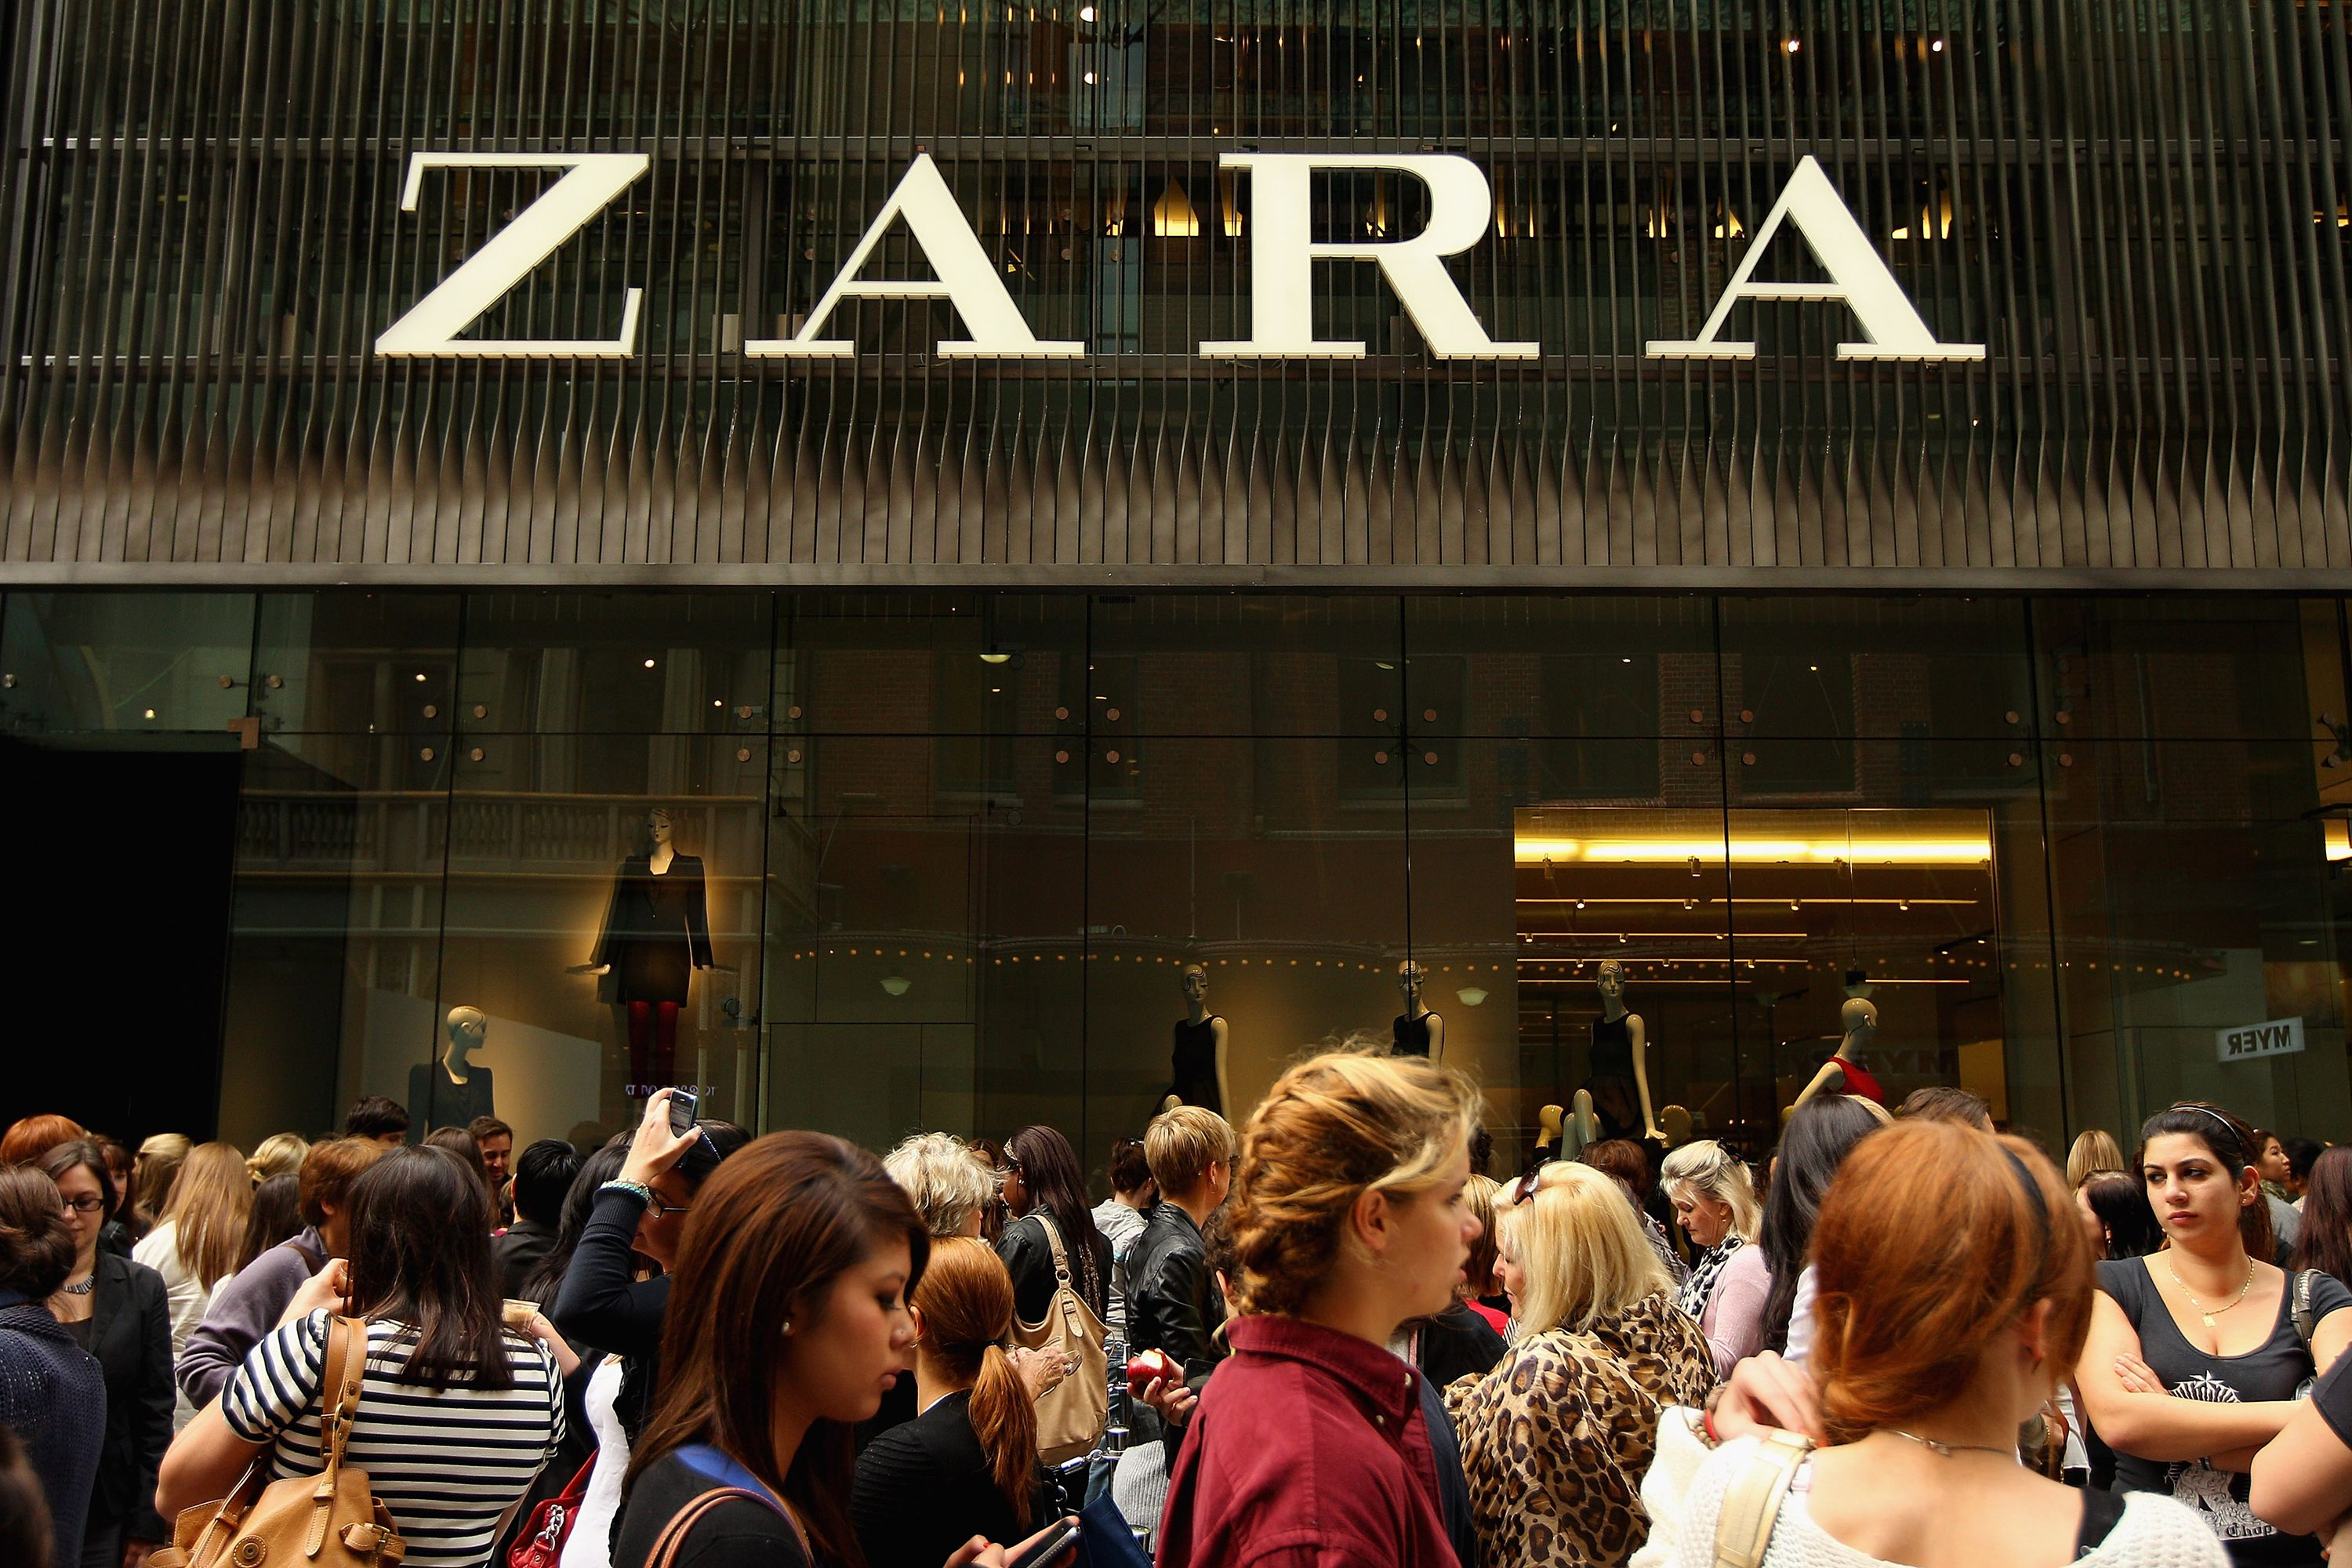 c767a099 Zara's unpaid workers have been leaving desperate notes in clothes